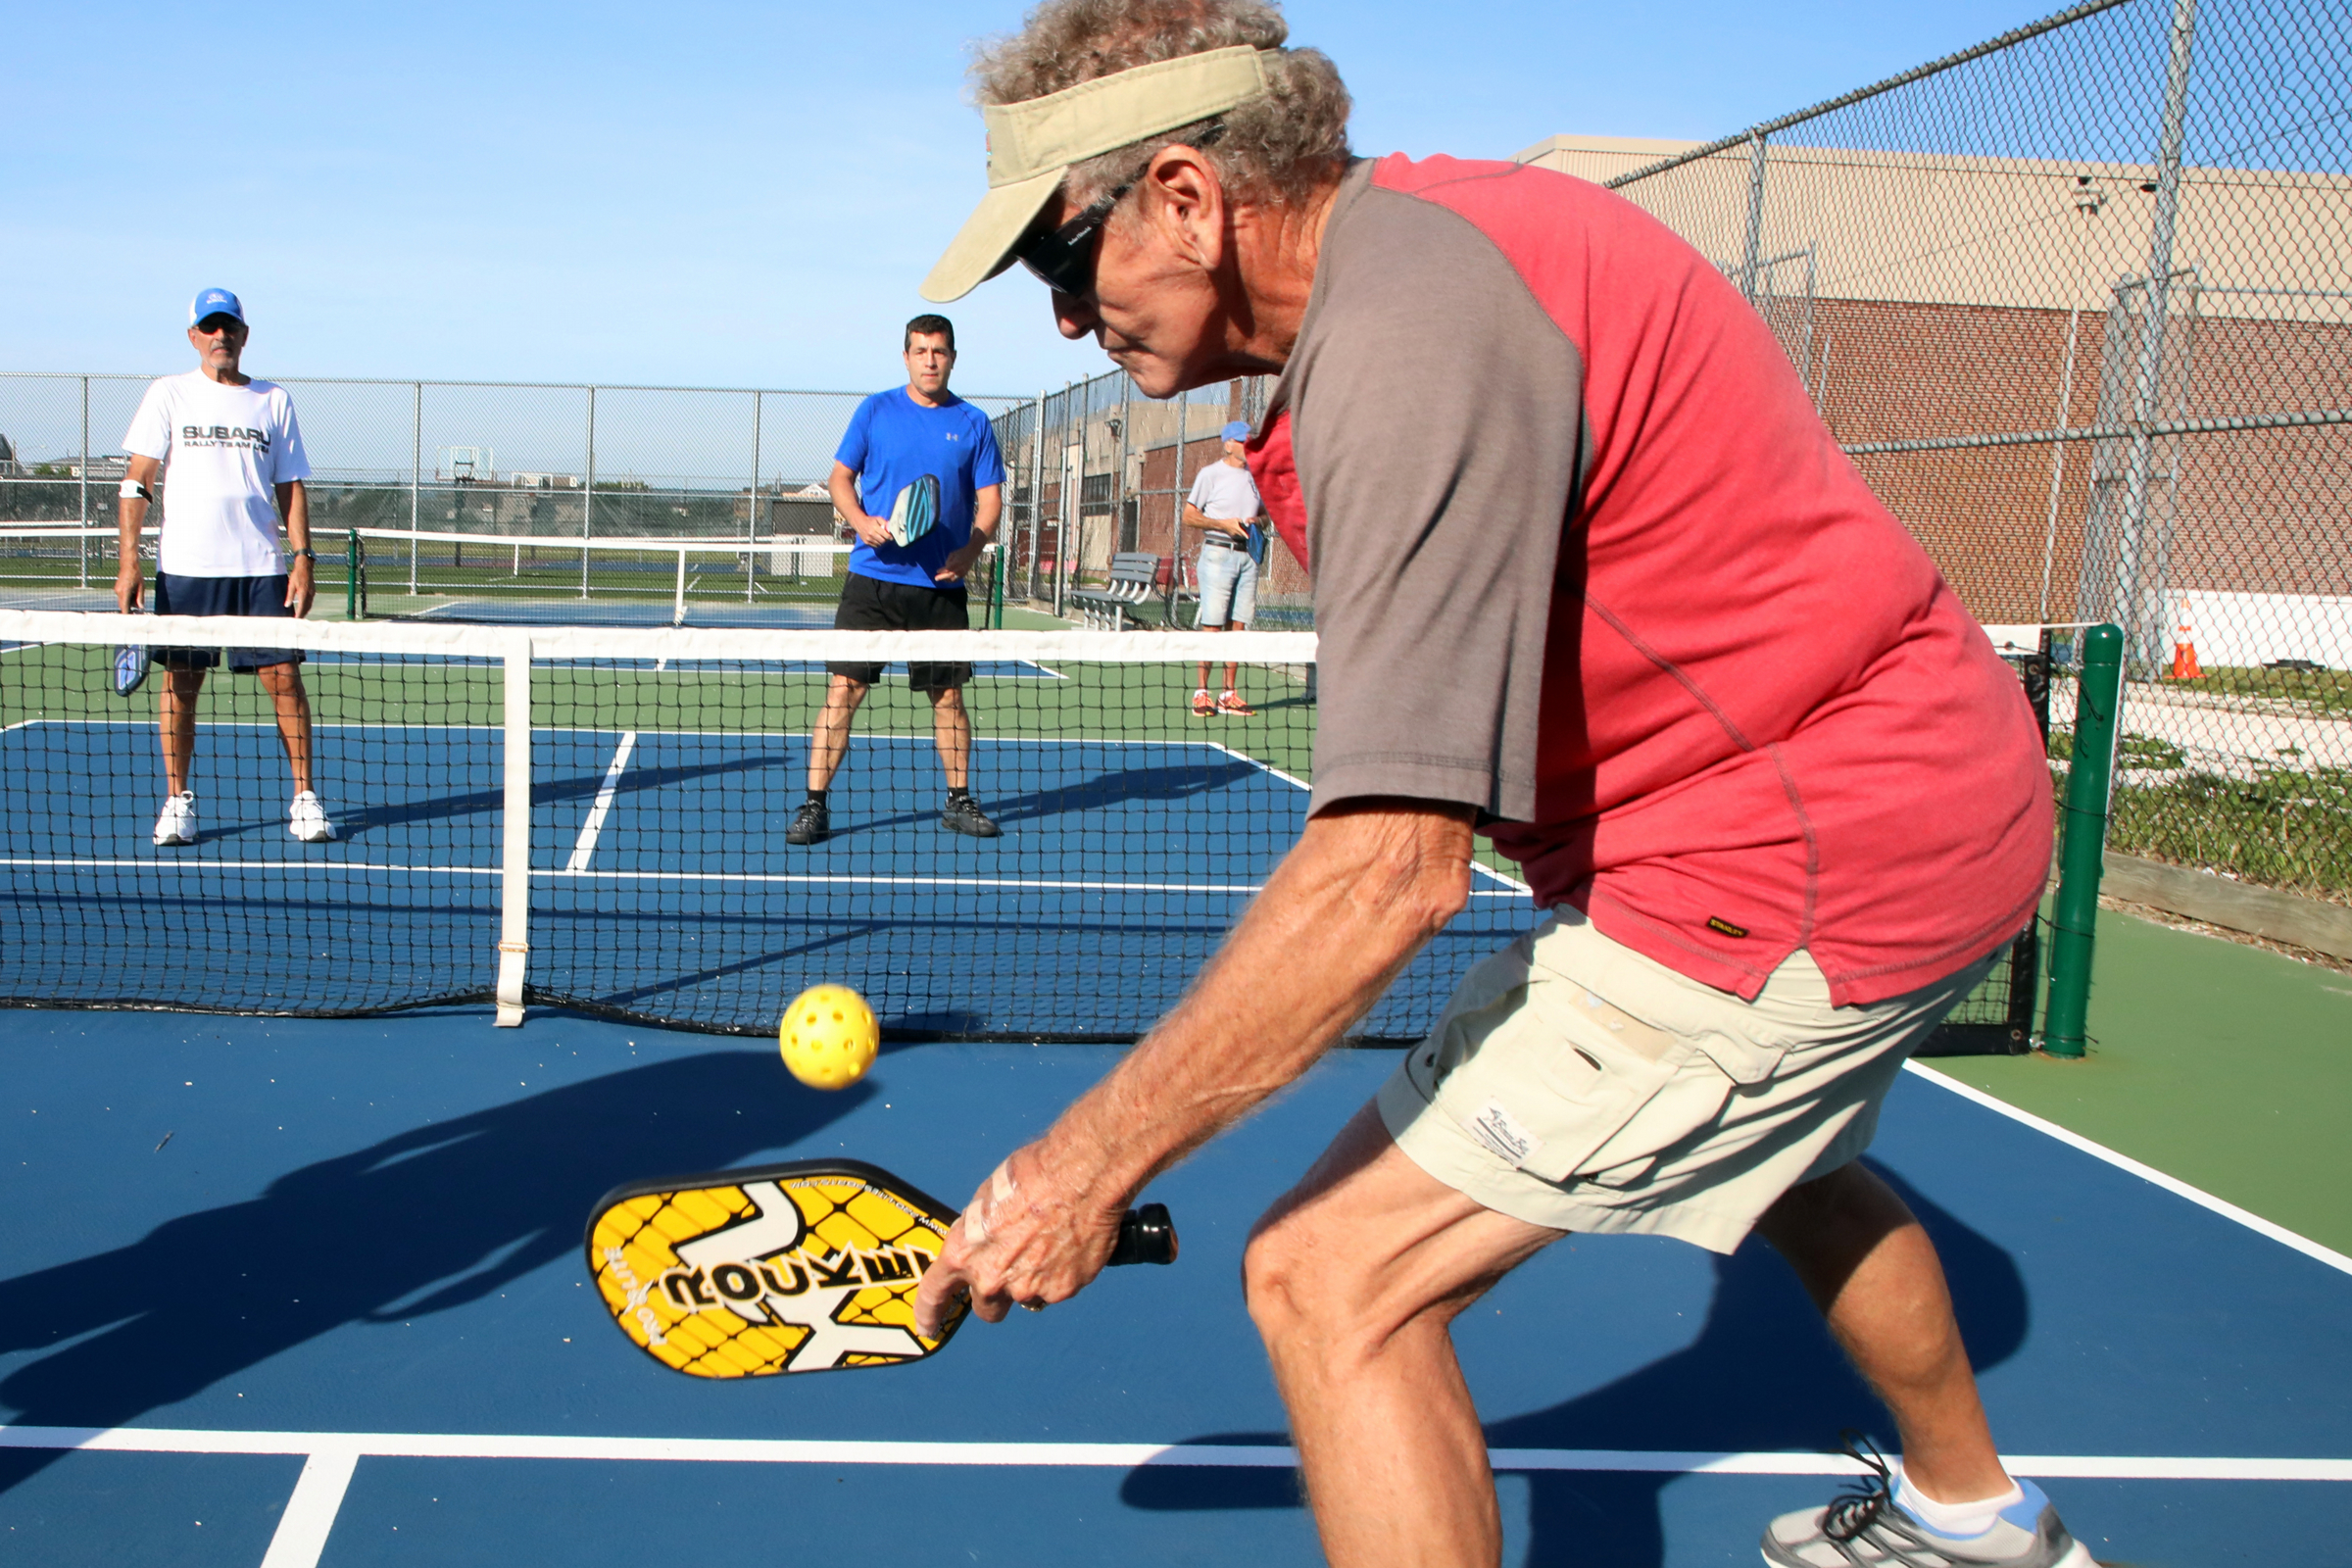 Bob Murphy, of Ocean City and Marathon, FL., returns a shot on the the advanced-player pickleball courts in Ocean City, Friday, June 29, 2018.